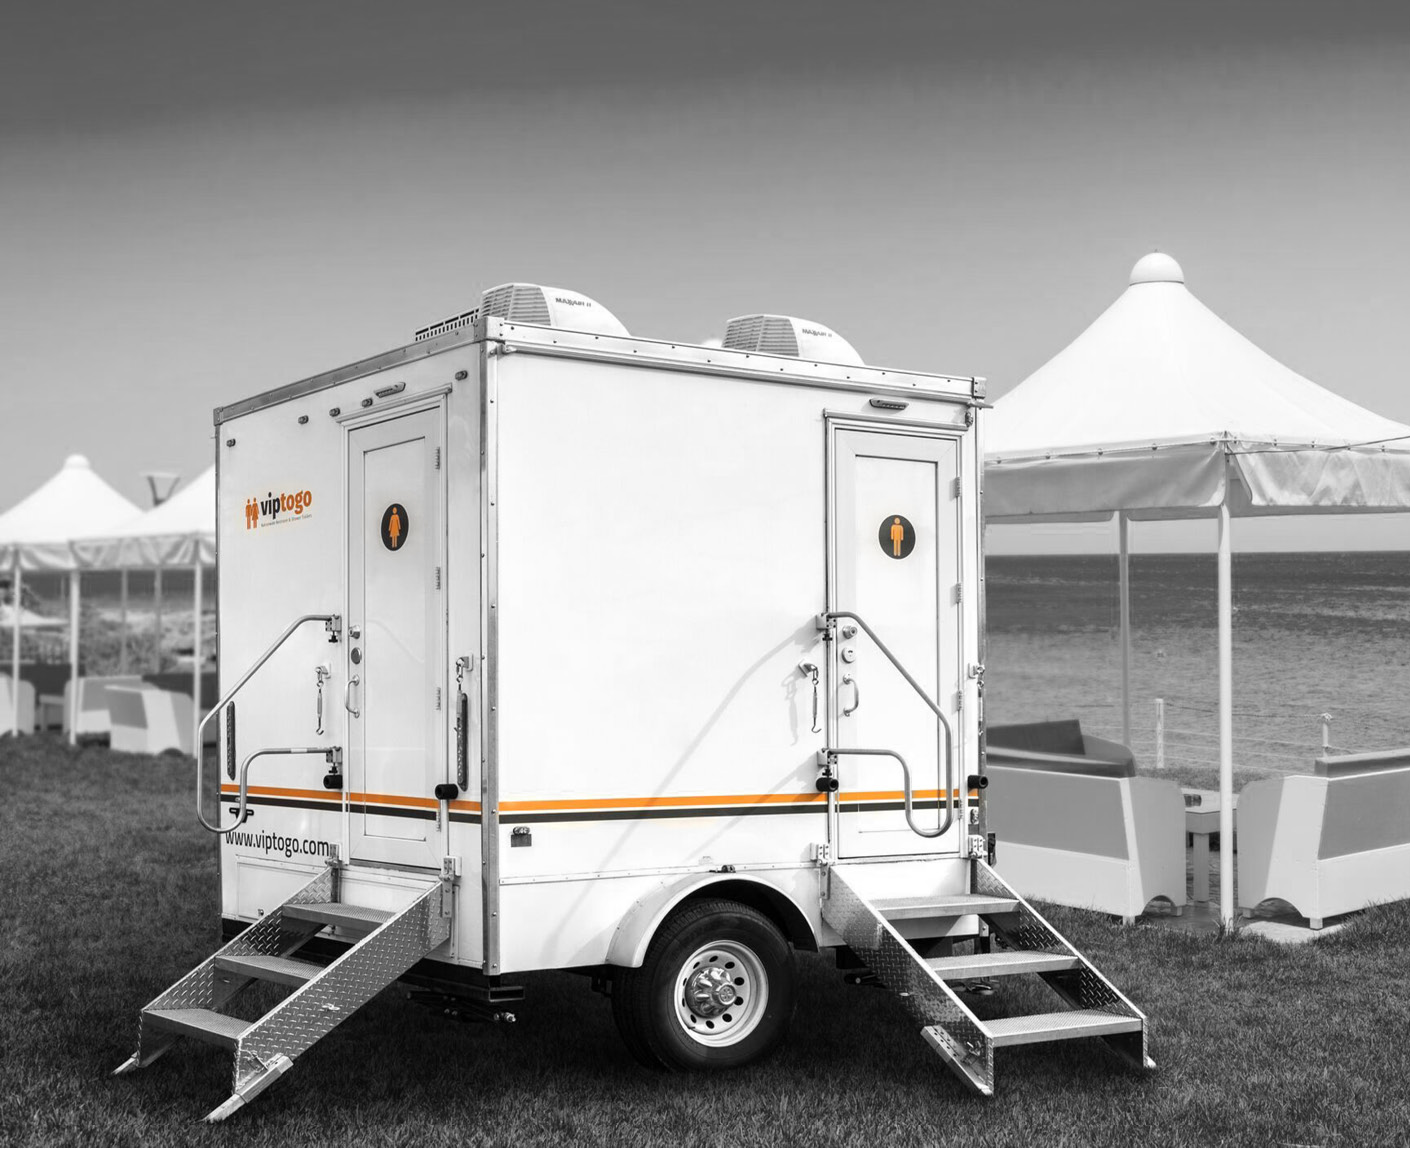 A mini restroom trailer with two separate stations and separate doors for males and females